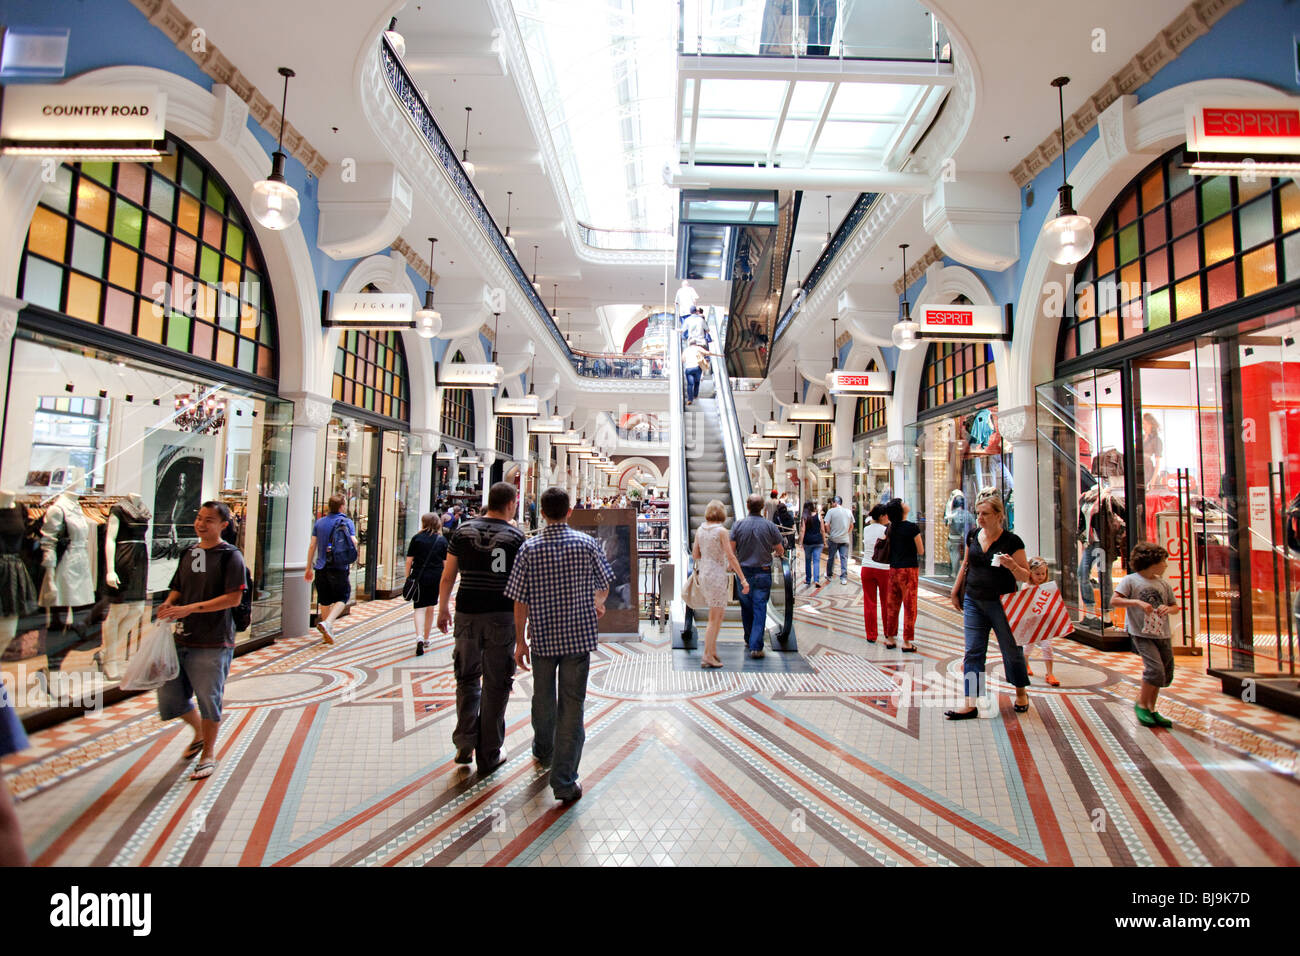 Shopping in Queen Victoria Building Shopping Mall Sydney, Australia - Stock Image